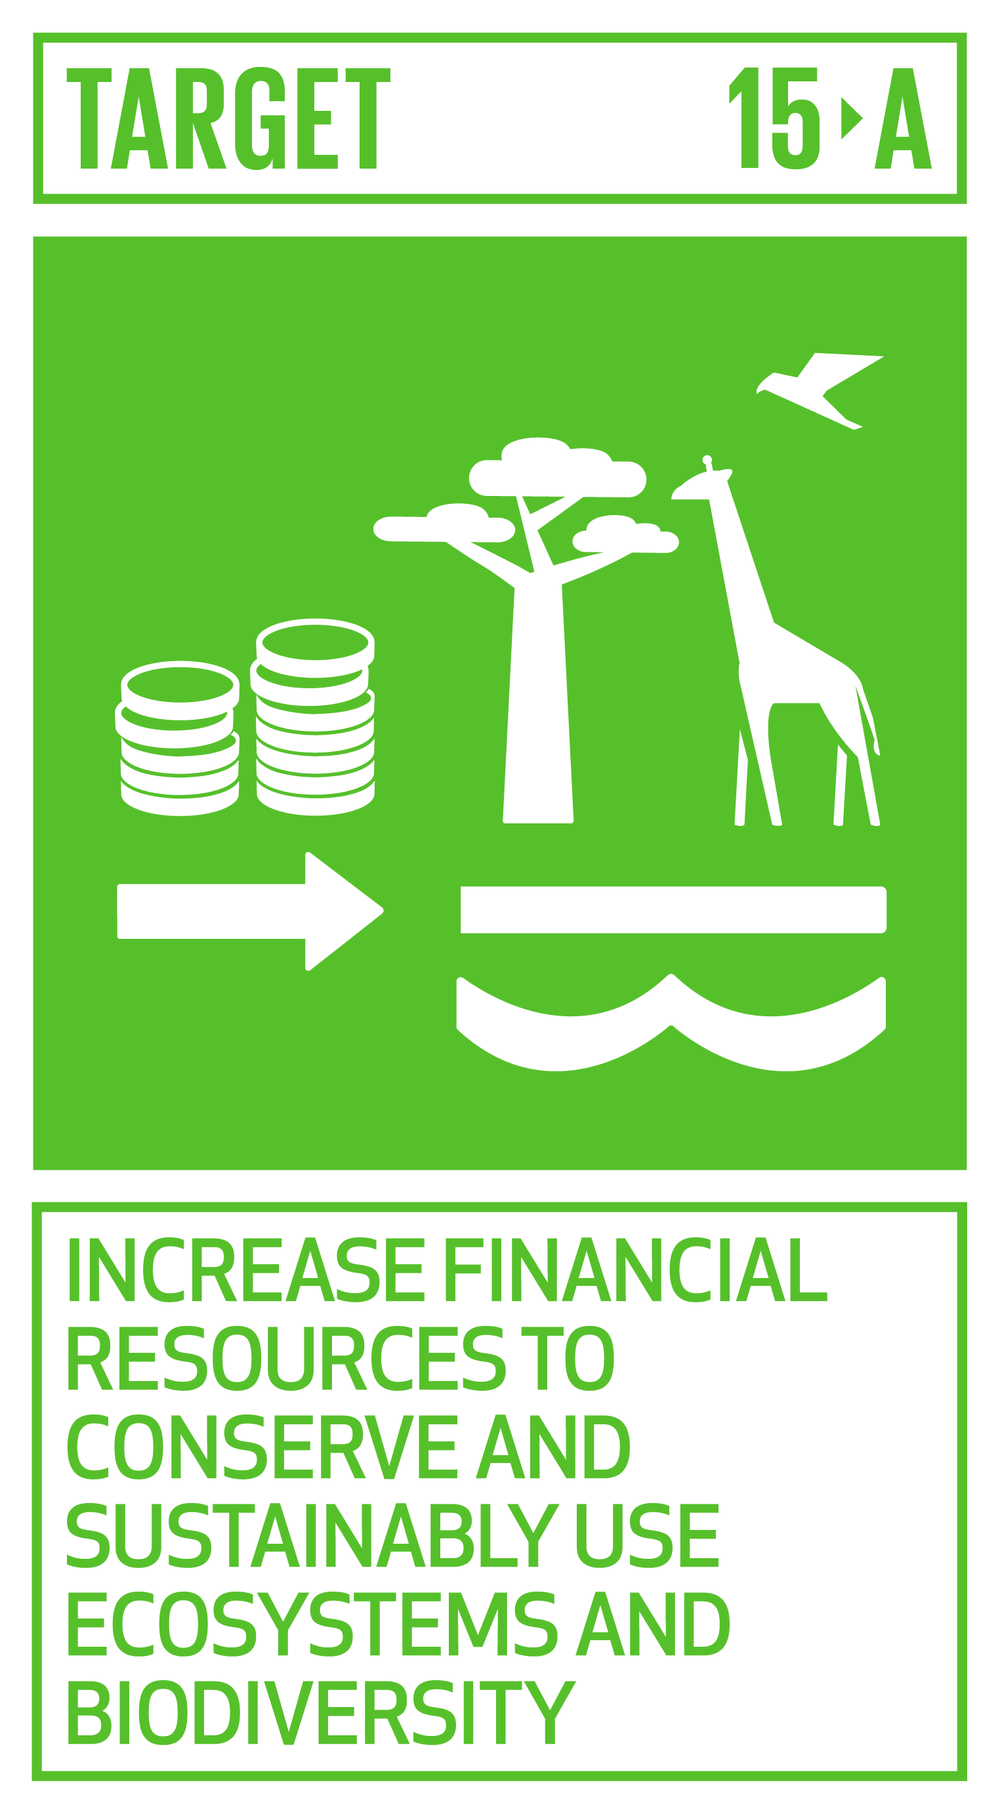 Mobilize and significantly increase financial resources from all sources to conserve and sustainably use biodiversity and ecosystems.   INDICATOR    15.a.1  Official development assistance and public expenditure on conservation and sustainable use of biodiversity and ecosystems